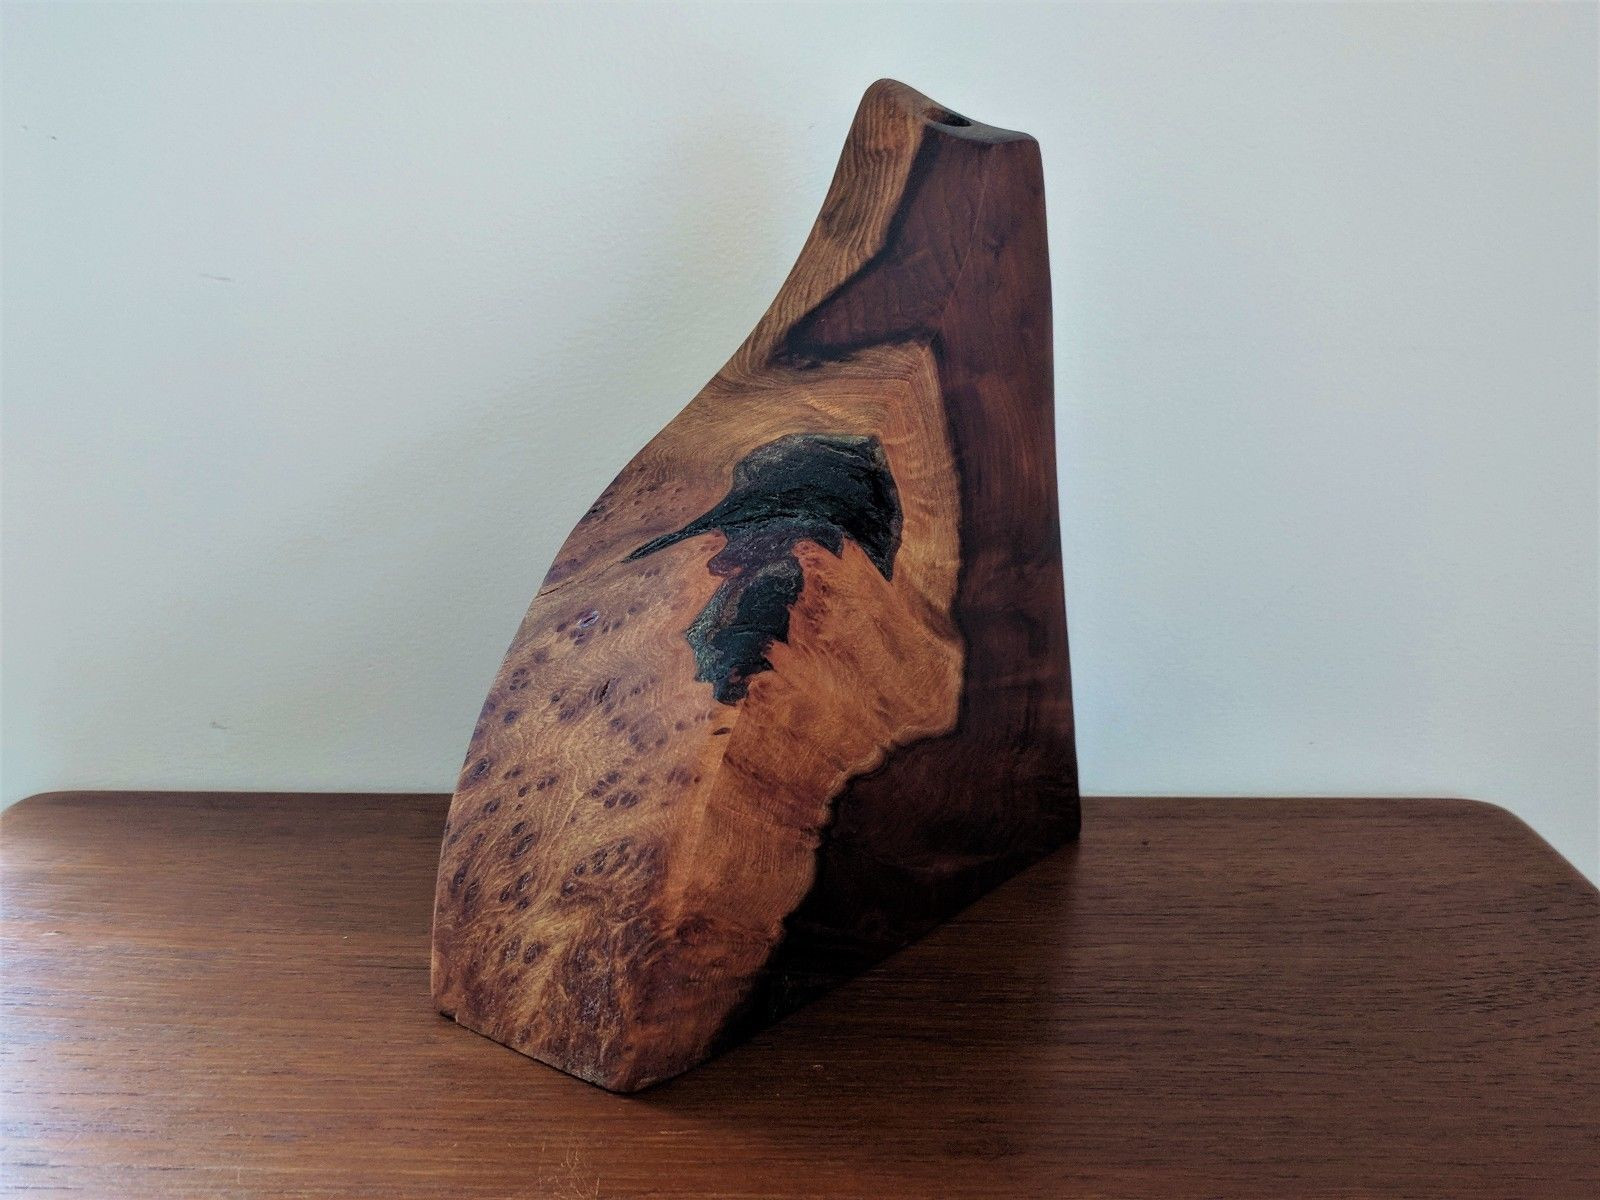 burl wood vase of beautiful signed uli kirchler burl redwood wood vase mid century with beautiful signed uli kirchler burl redwood wood vase mid century abstract